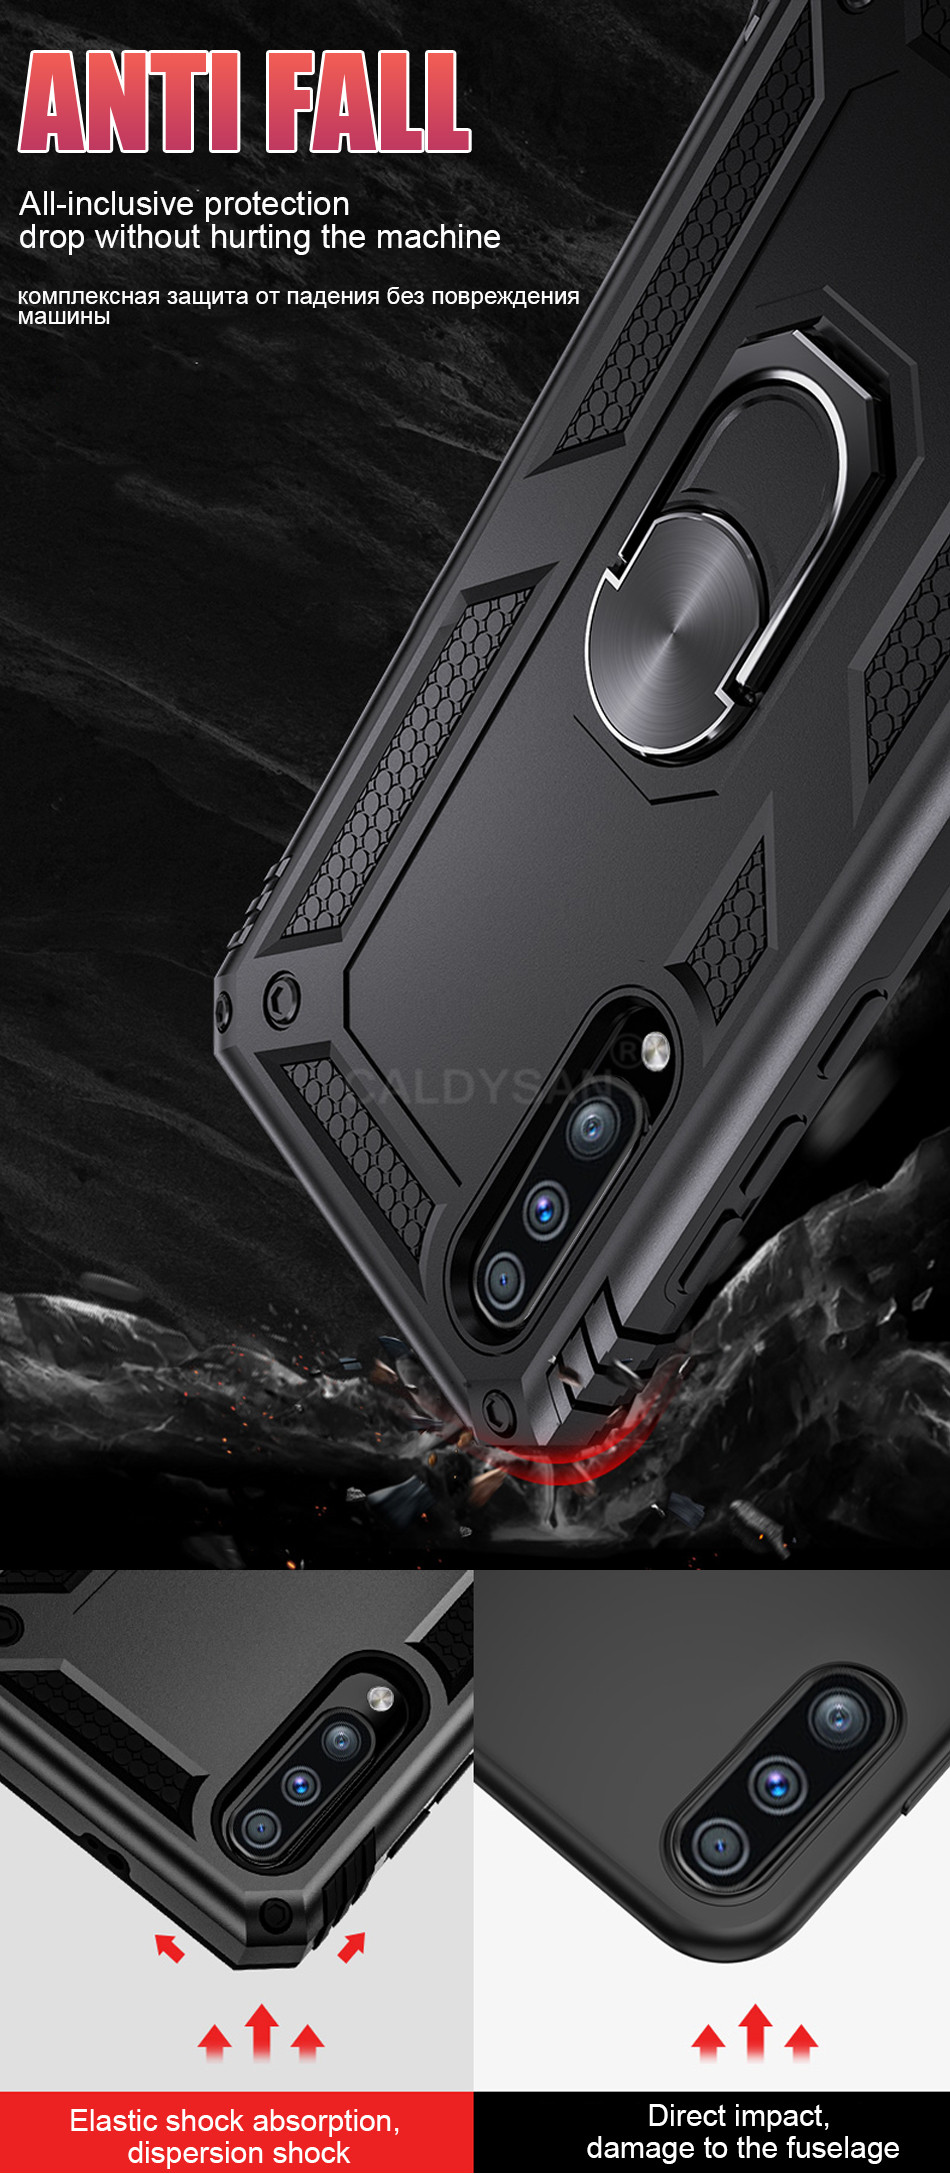 HTB1ZLGJbkxz61VjSZFrq6xeLFXao - Luxury Armor Shockproof Case For Samsung Galaxy A50 A30 A51 A71 S20 Ultra S9 S10 S8 Note 8 9 10 Plus Car Holder Ring Case Cover